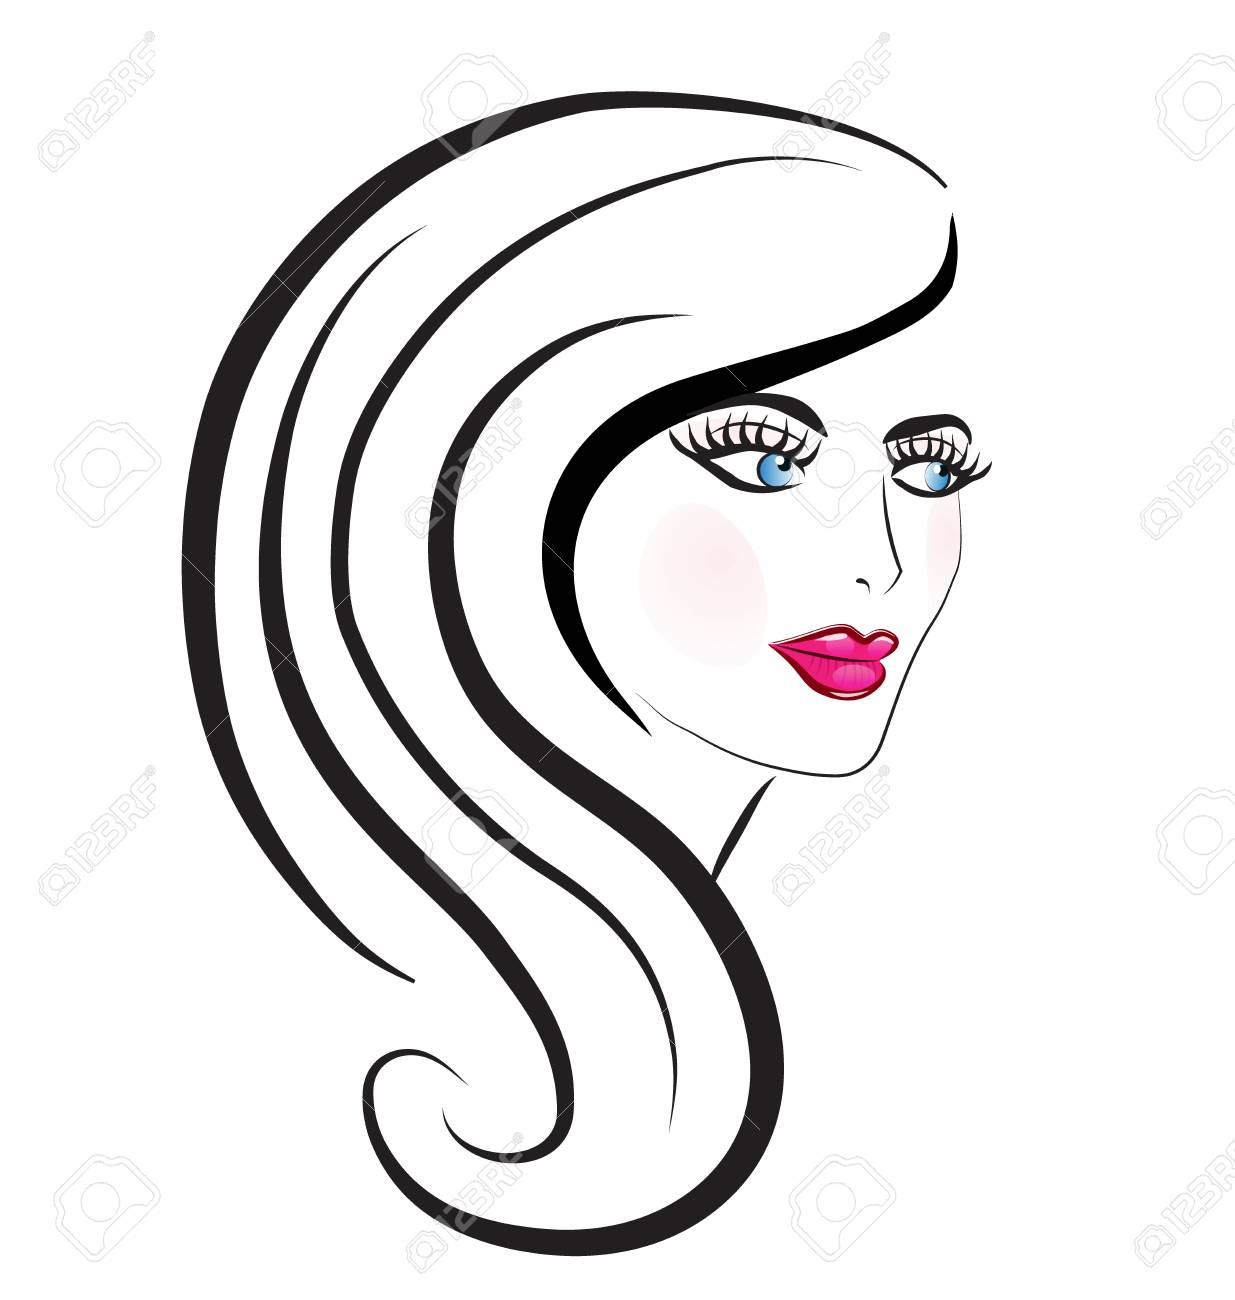 Beautiful Woman Hair Salon Vector Royalty Free Cliparts Vectors And Stock Illustration Image 98749571